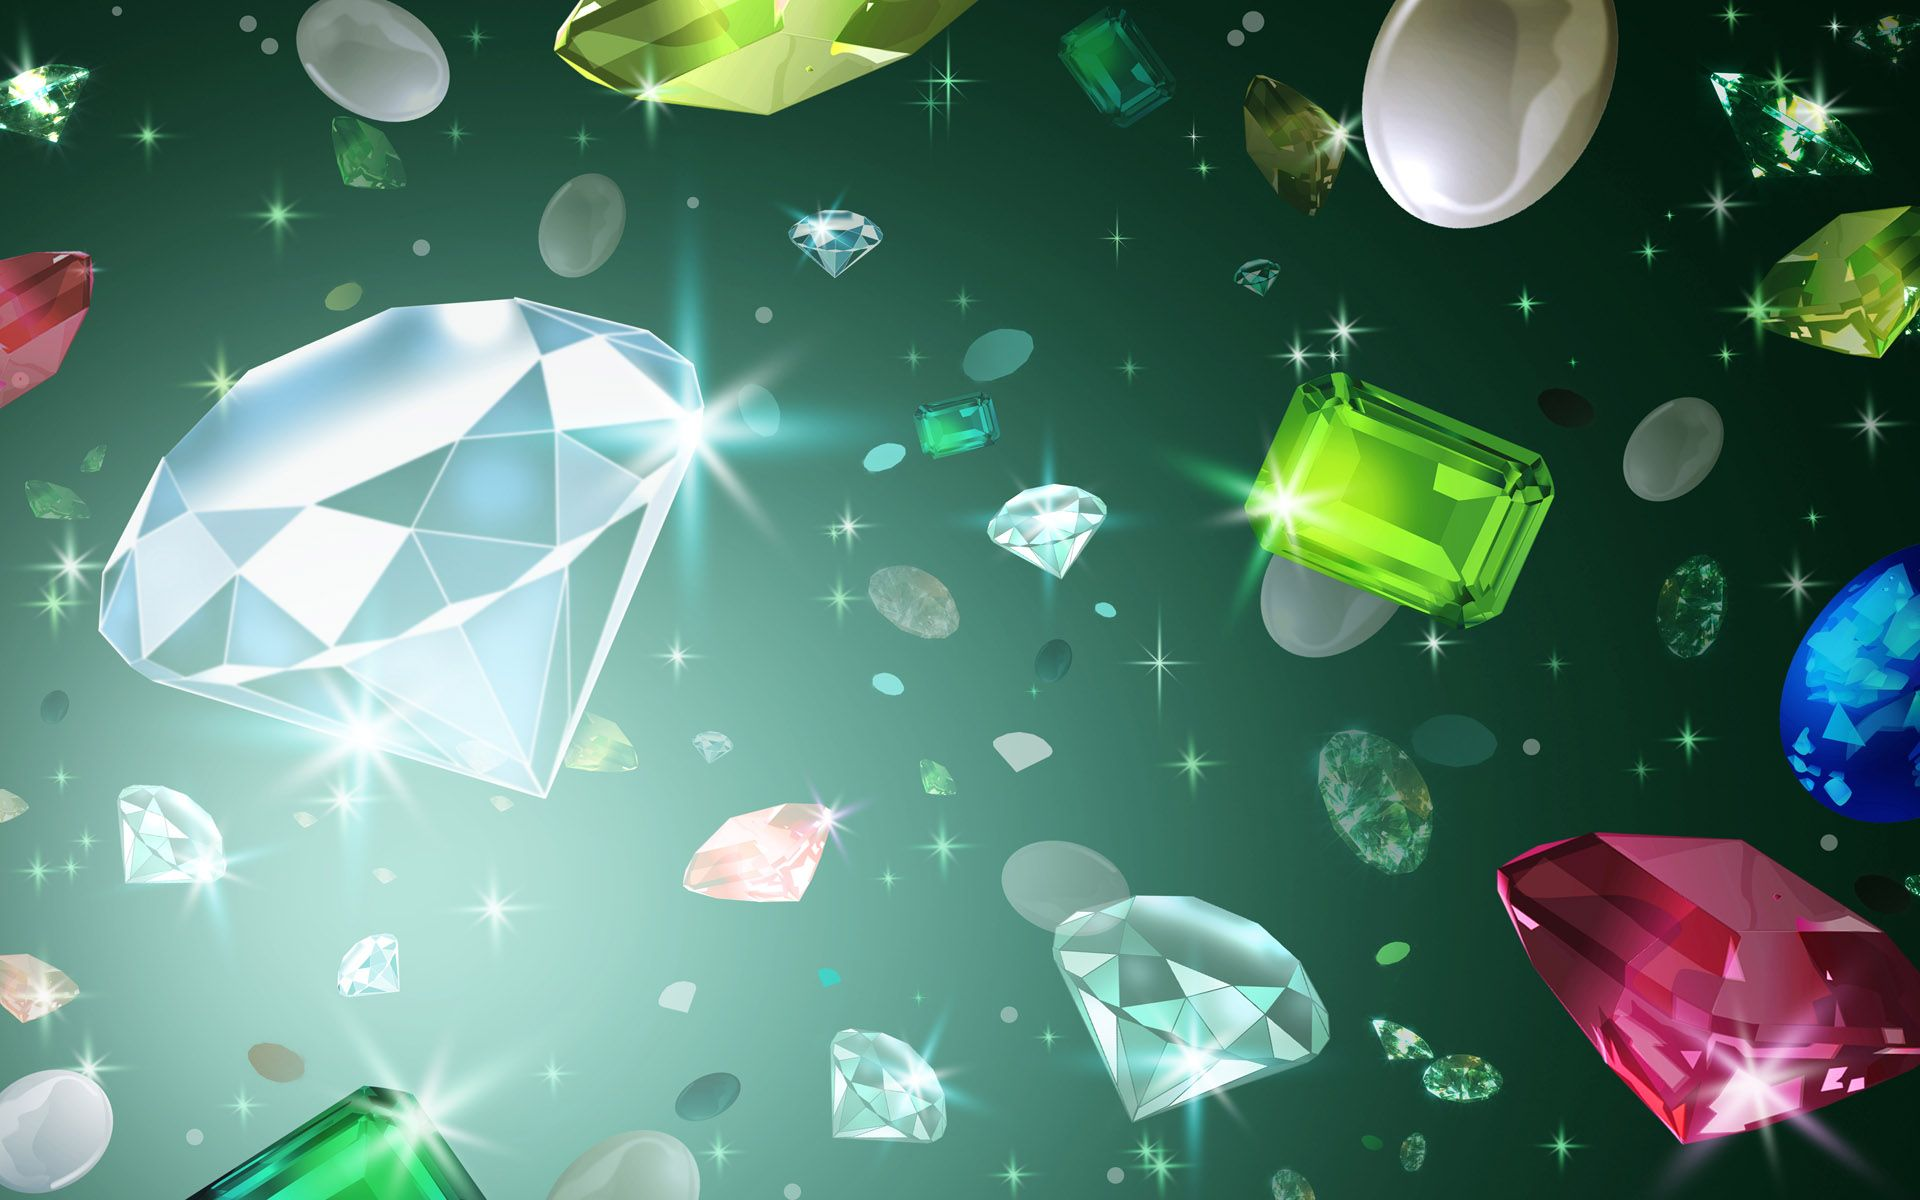 20 diamond backgrounds wallpapers images pictures